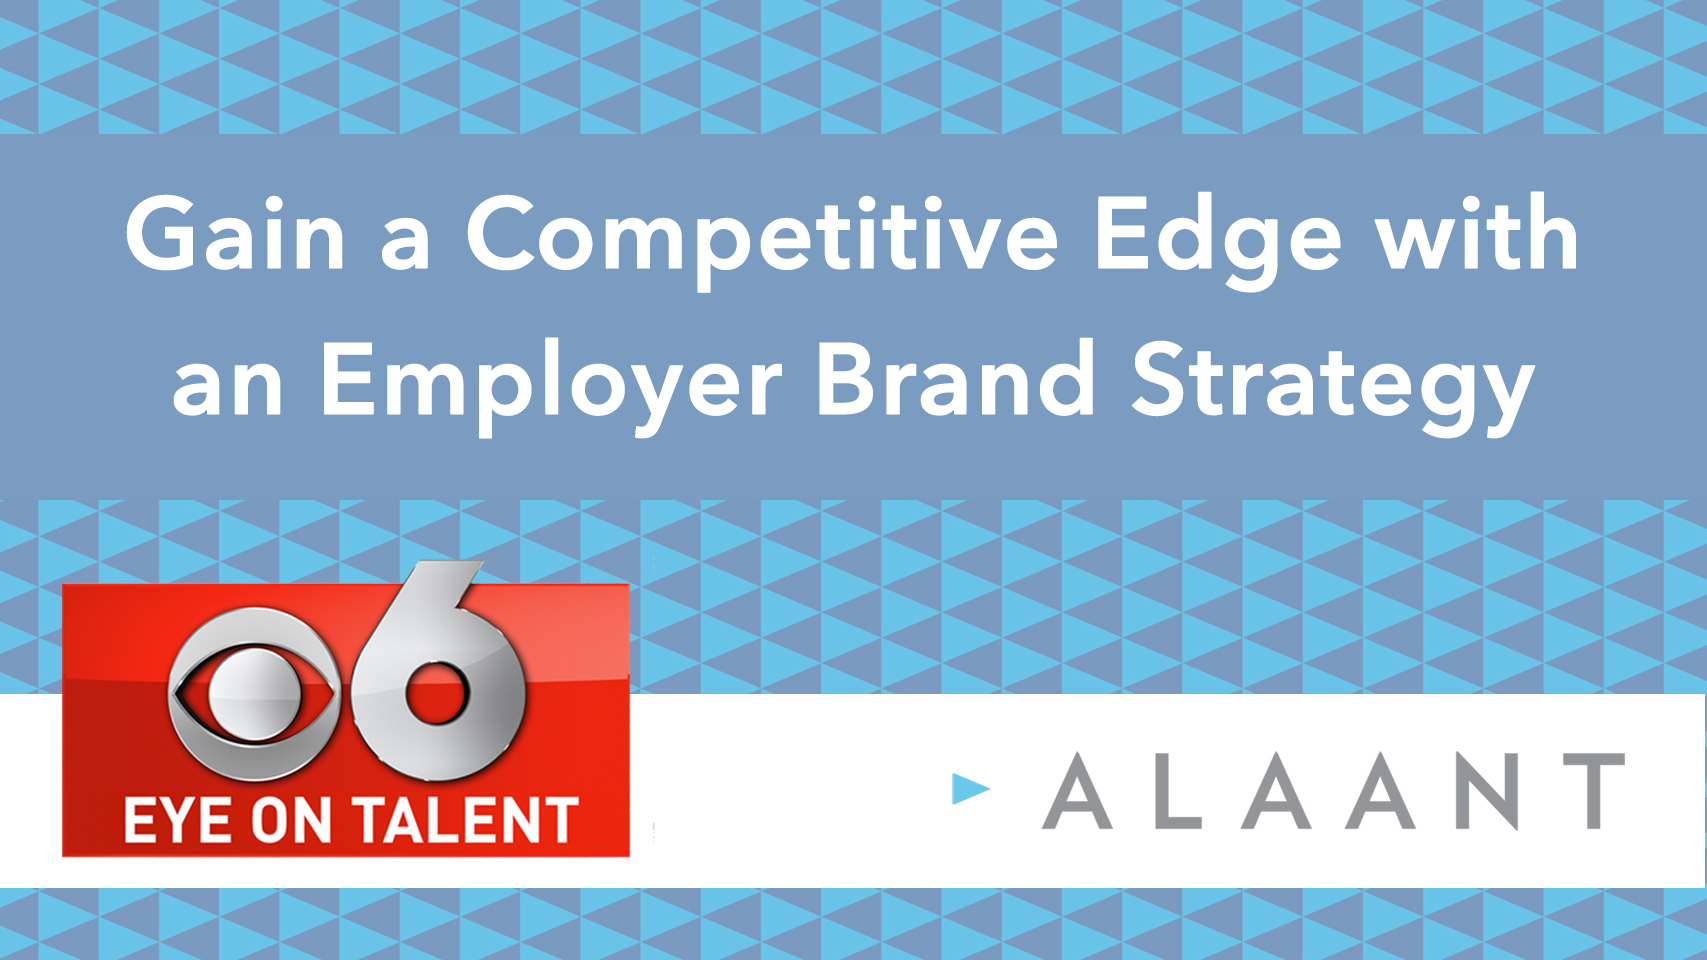 Eye On Talent: Gain a Competitive Edge with an Employer Brand Strategy